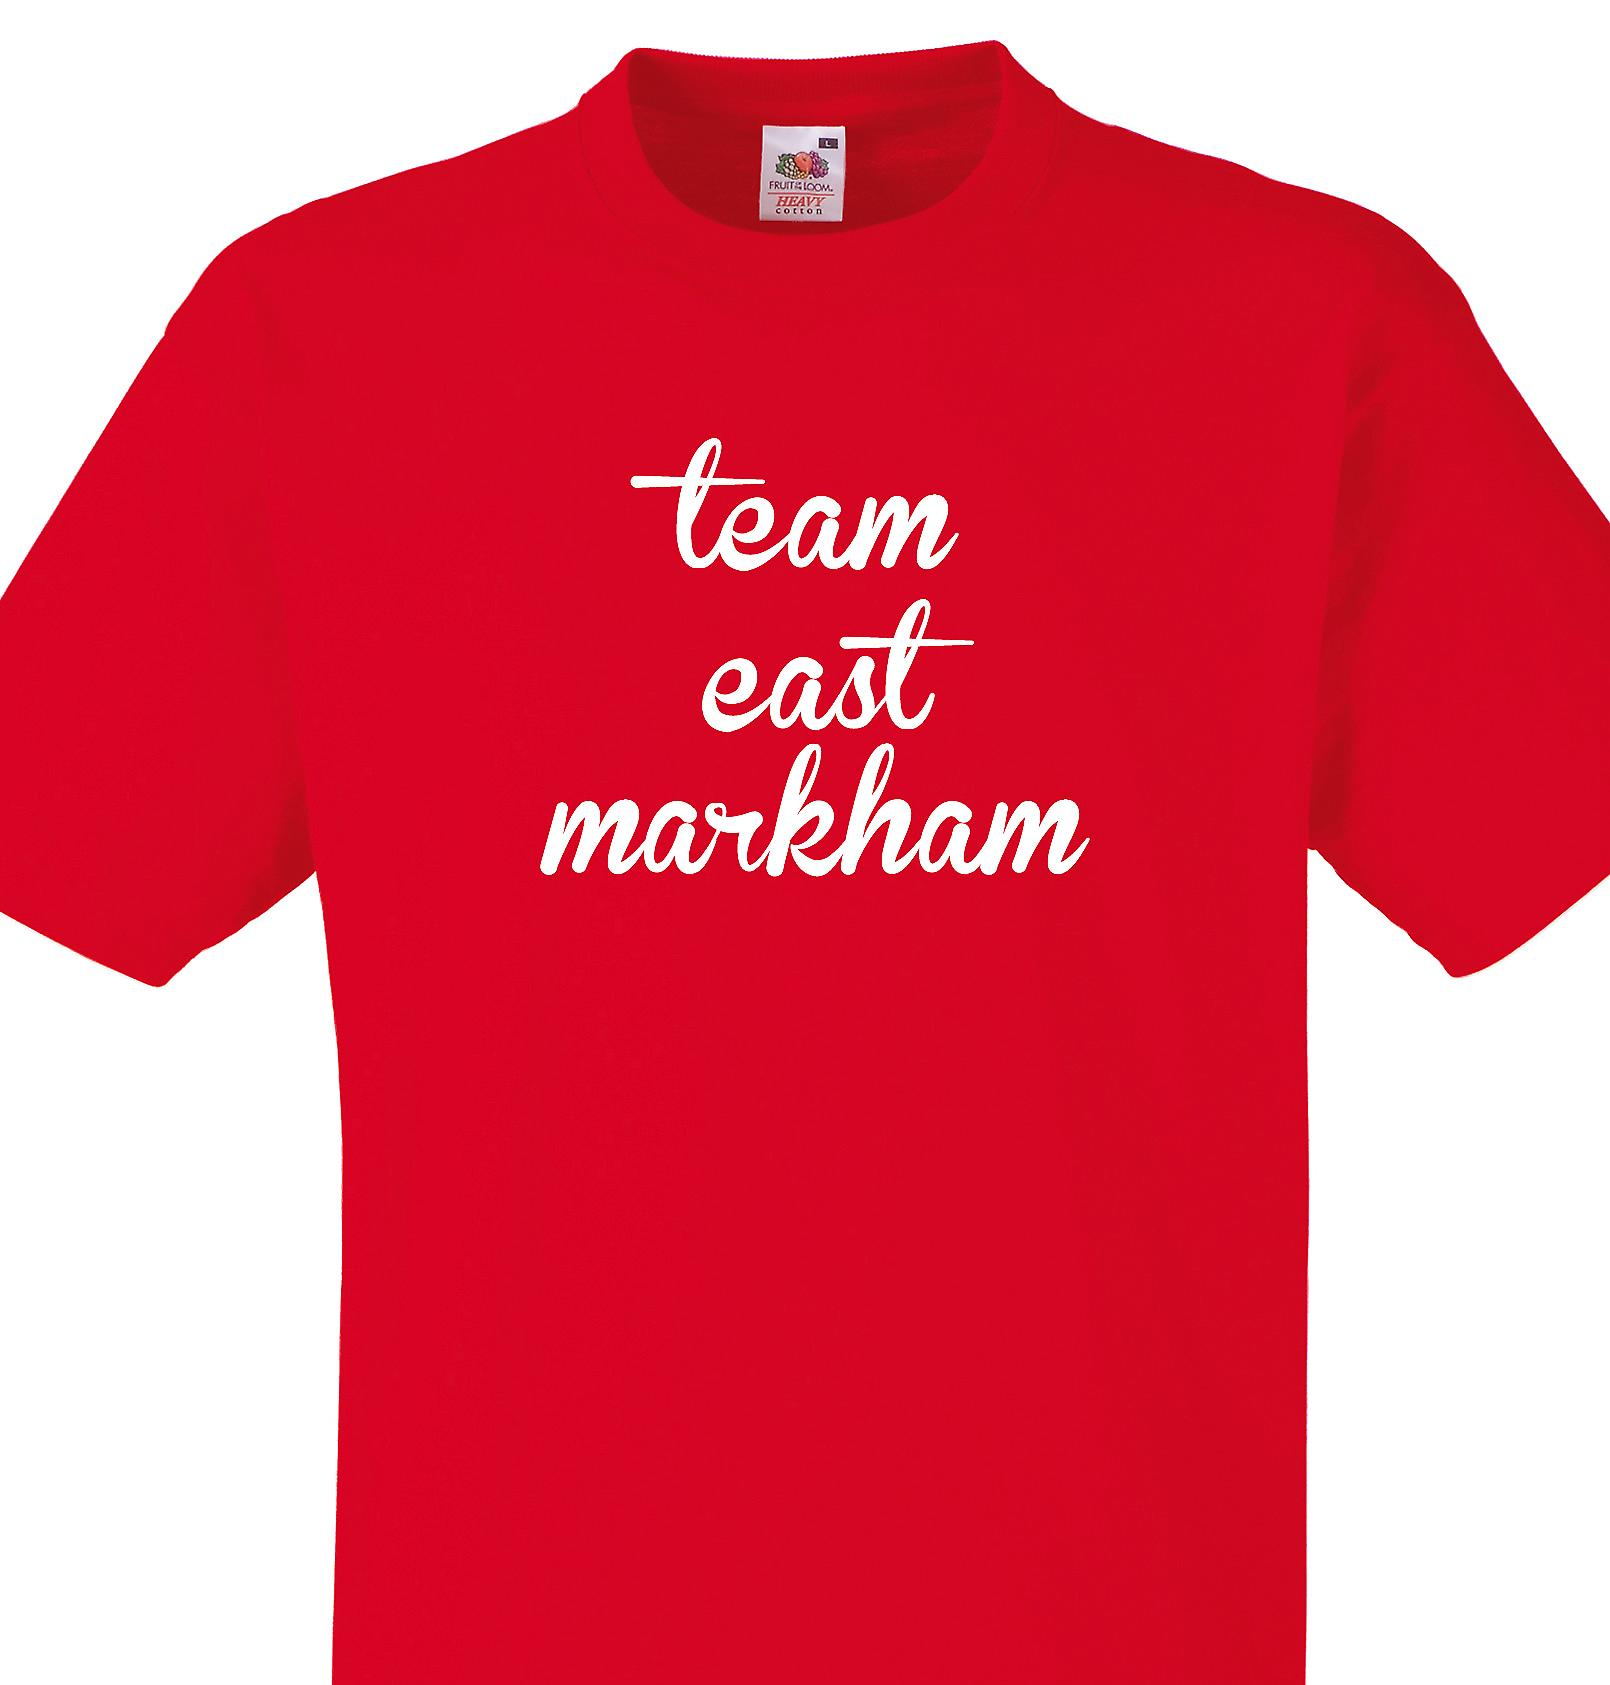 Team East markham Red T shirt